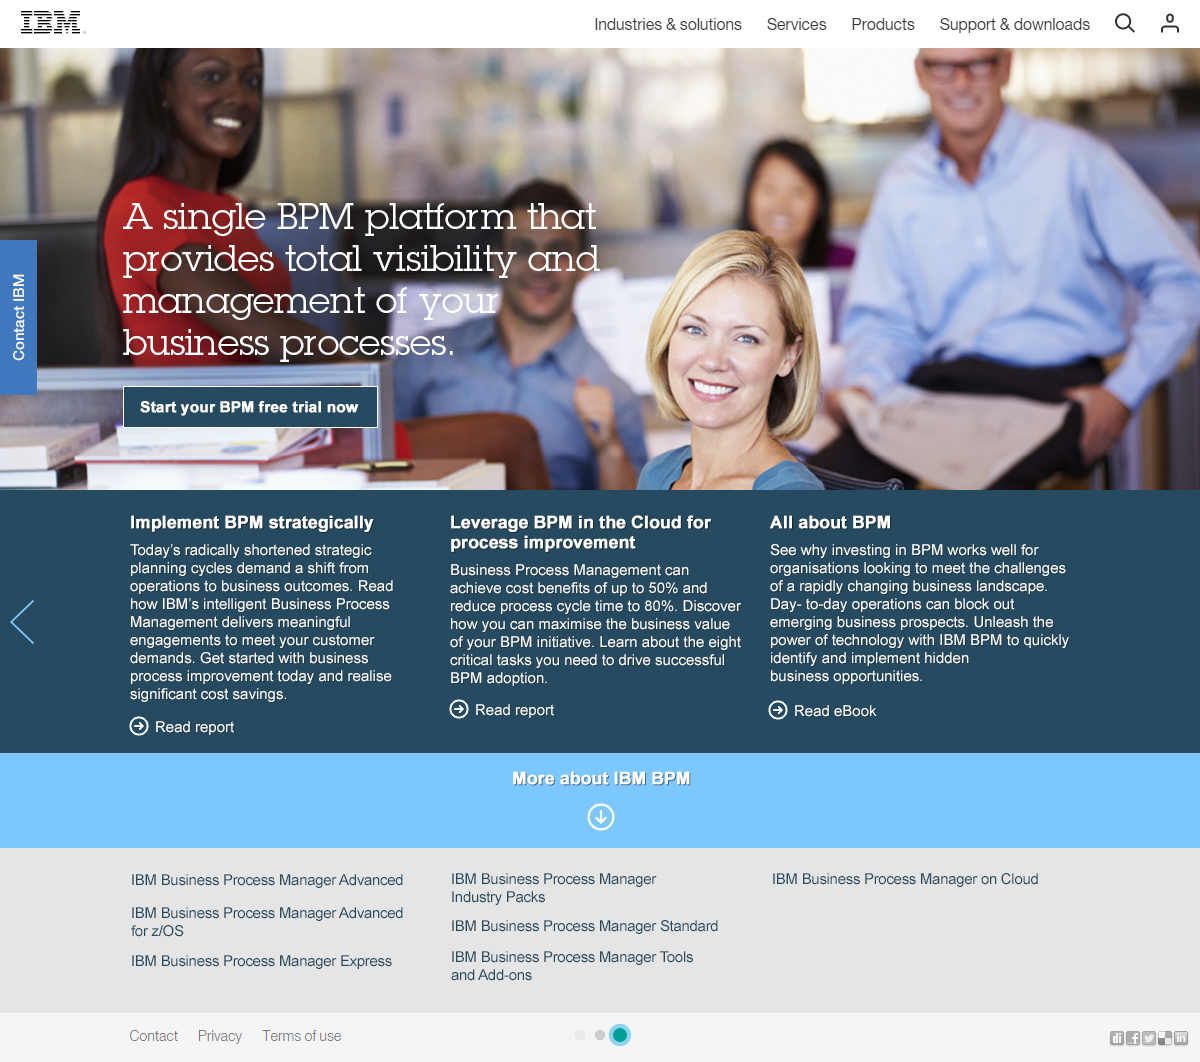 emerging business opportunities at ibm